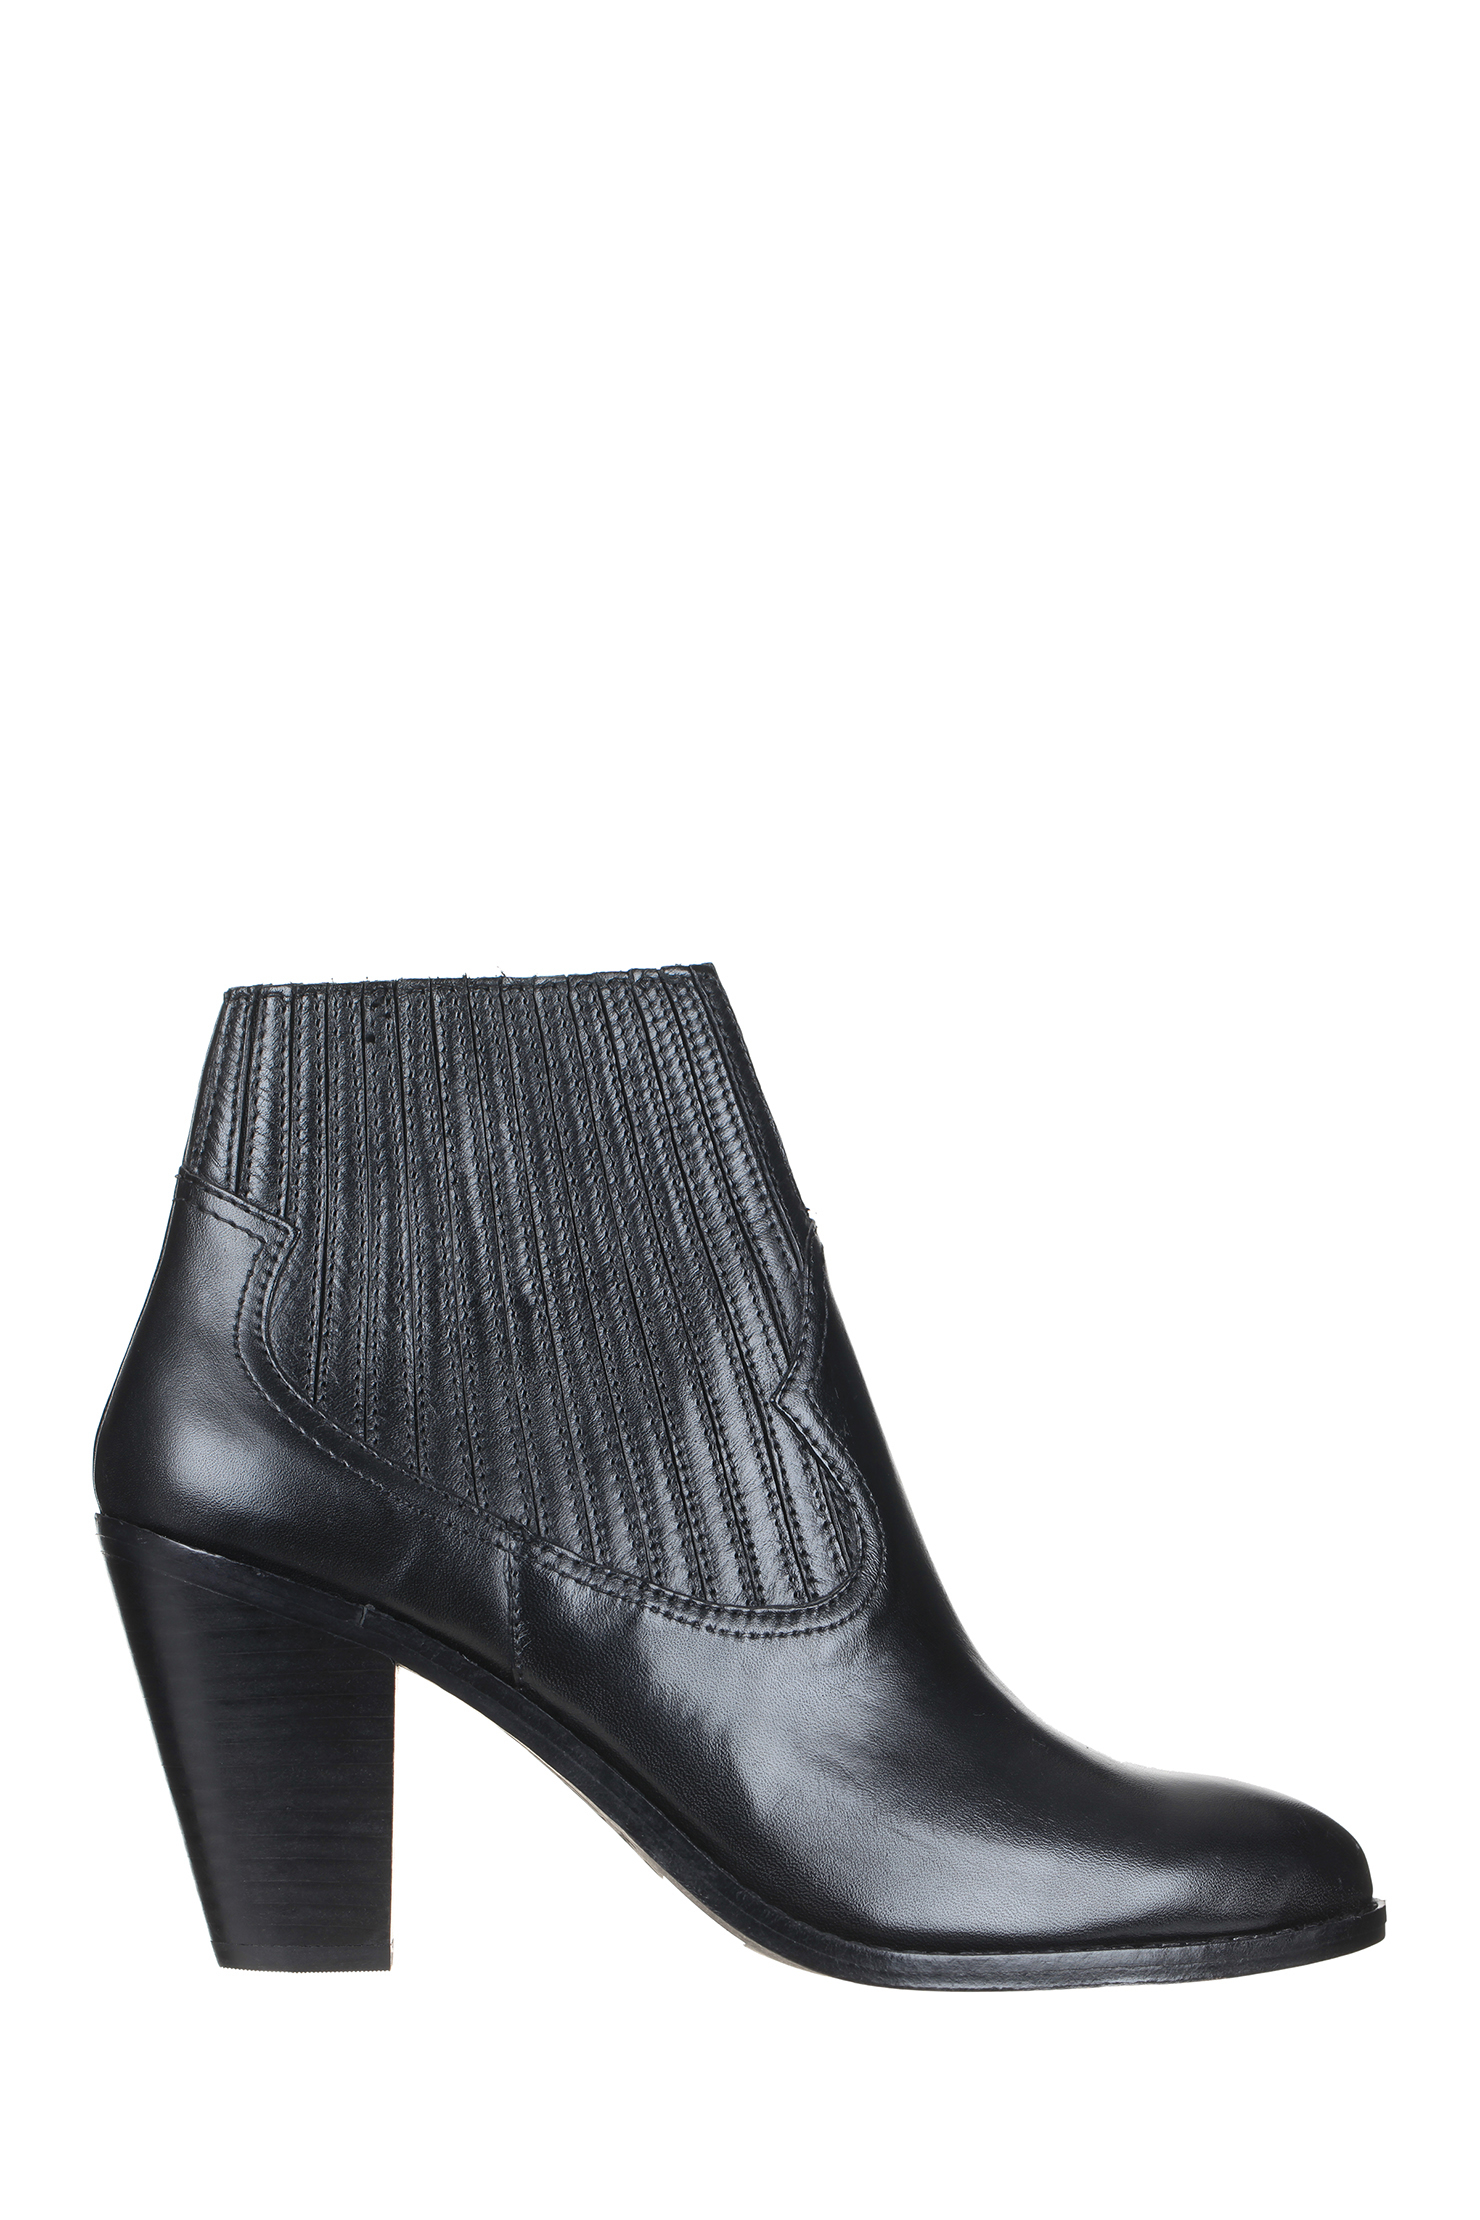 ash boots in black lyst